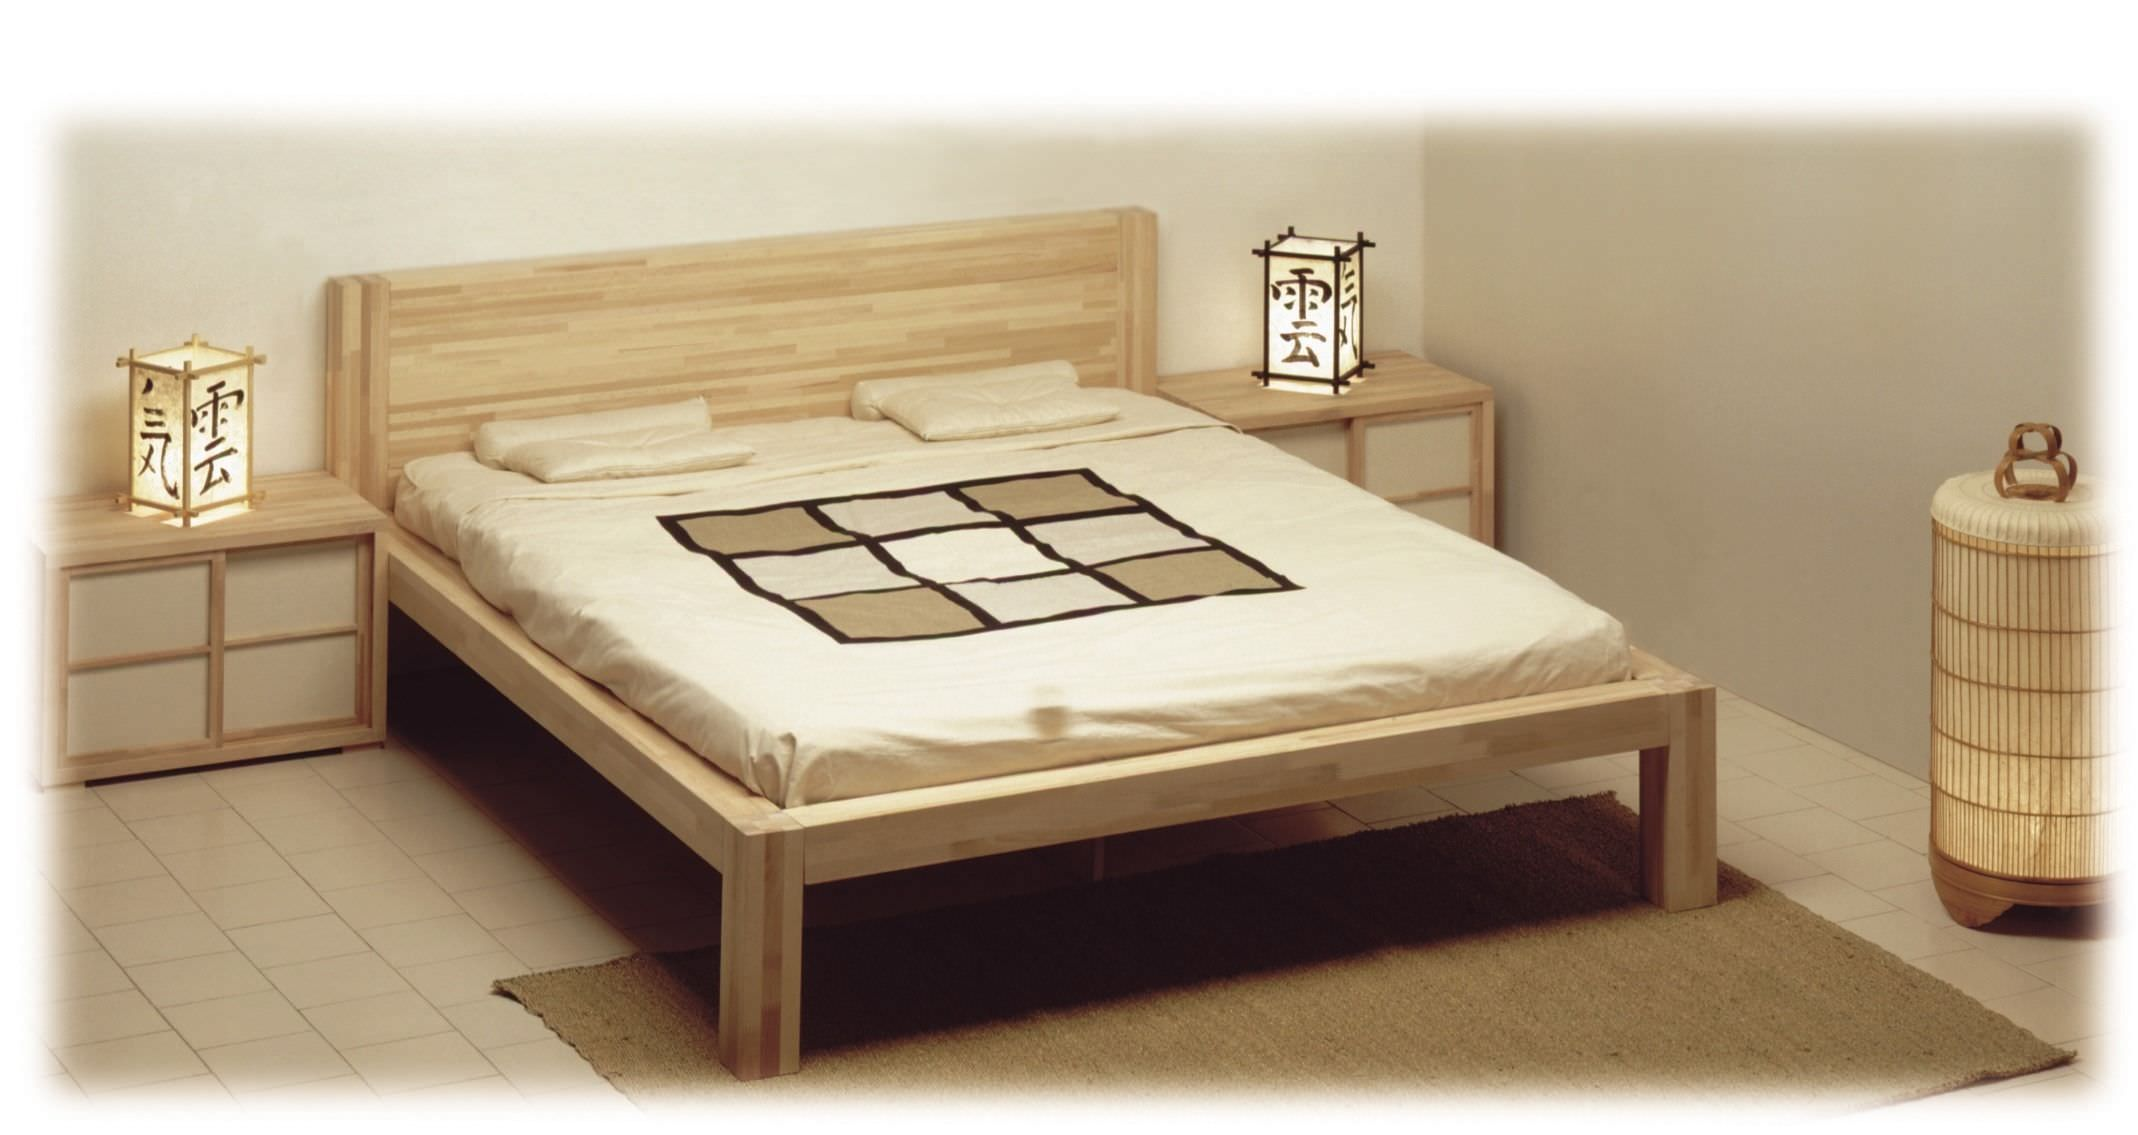 Letto tatami ikea beds pinterest bed wood and solid wood - Letto futon ikea ...